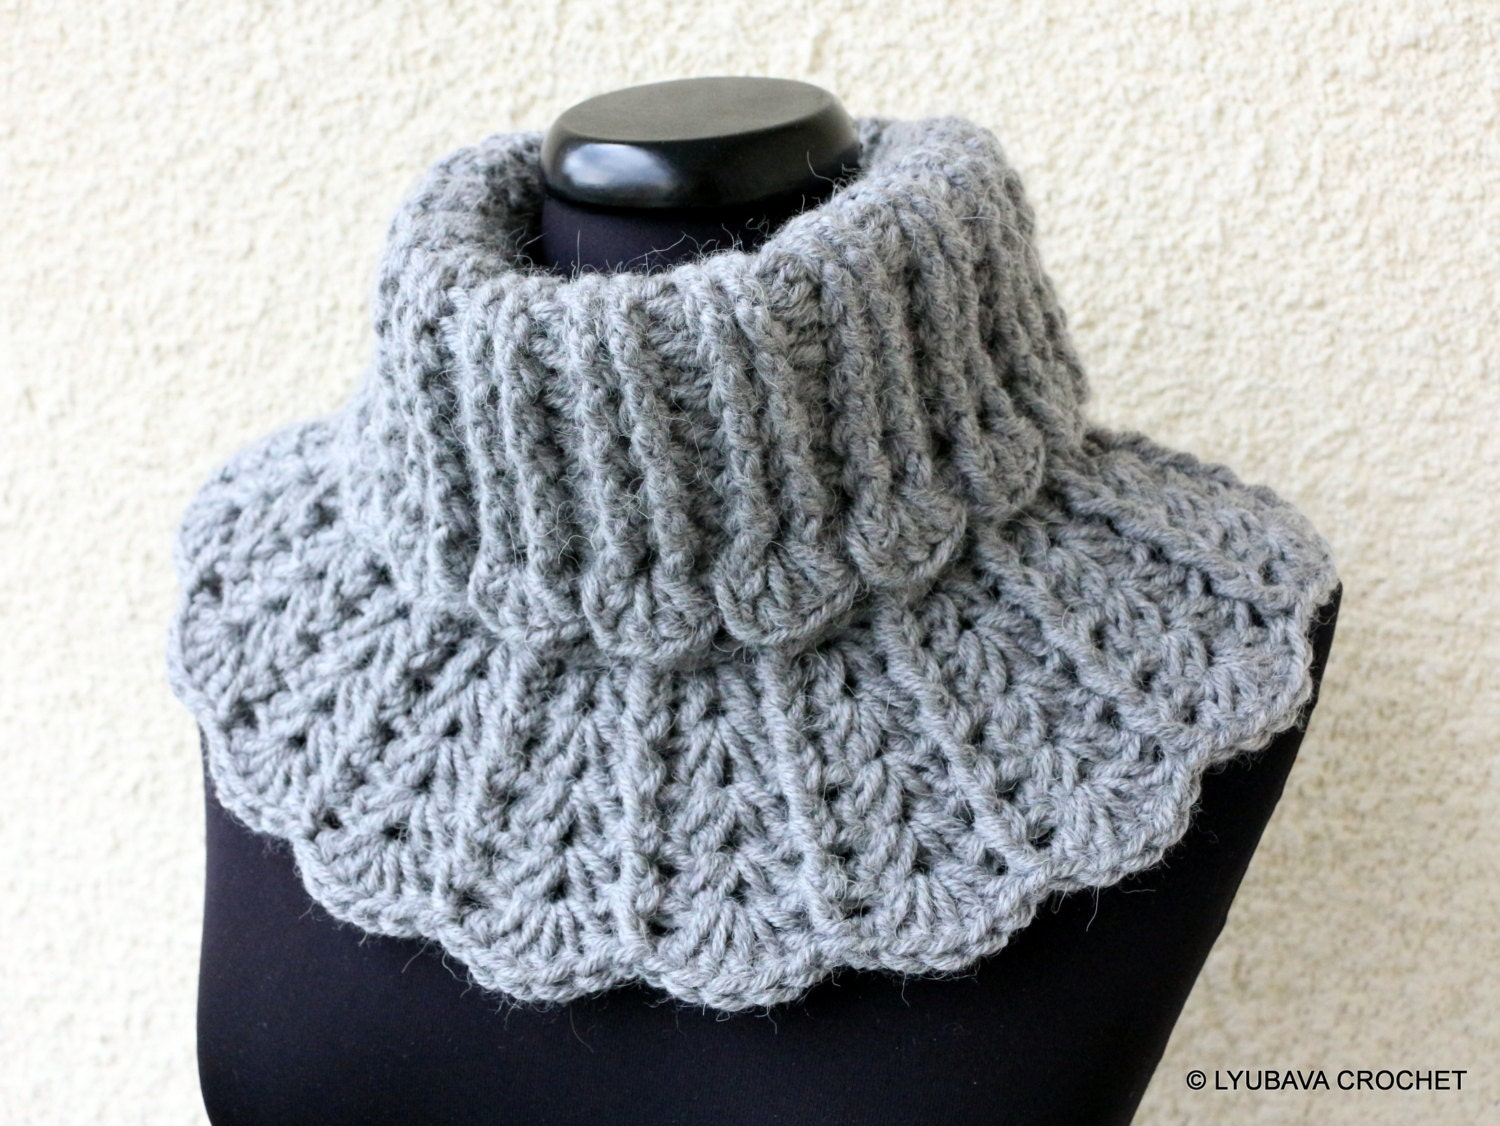 Crochet Patterns Neck Scarves : CROCHET Neck Warmer PATTERN Winter Scarf Chunky by LyubavaCrochet